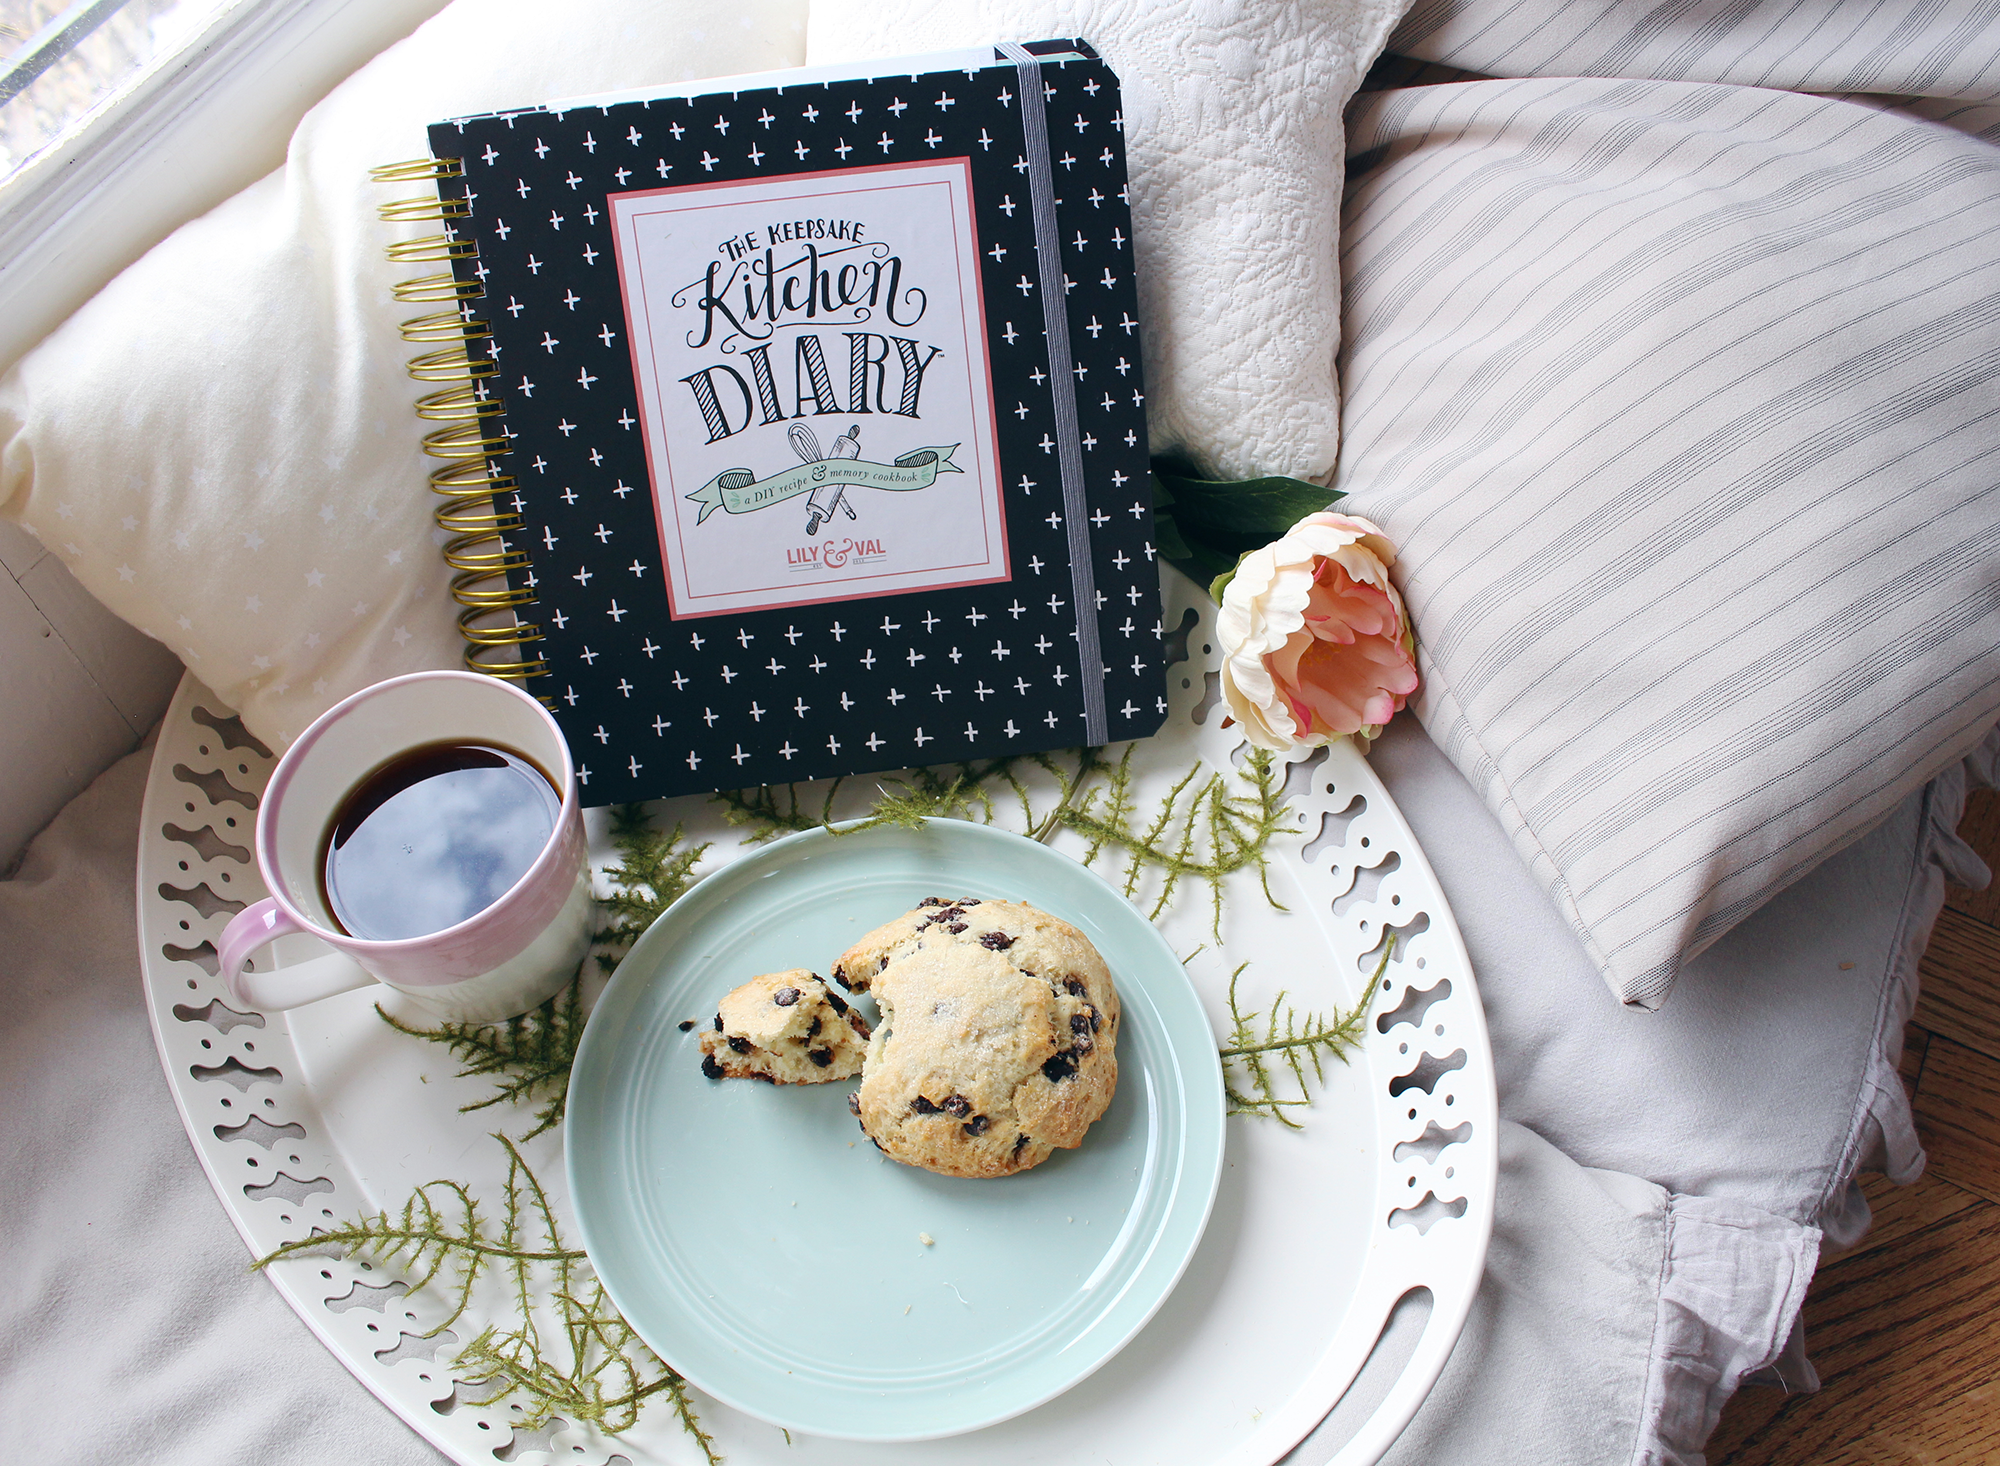 The Keepsake Kitchen Diary is a recipe keeper and journal and makes a perfect gift for a baker or foodie